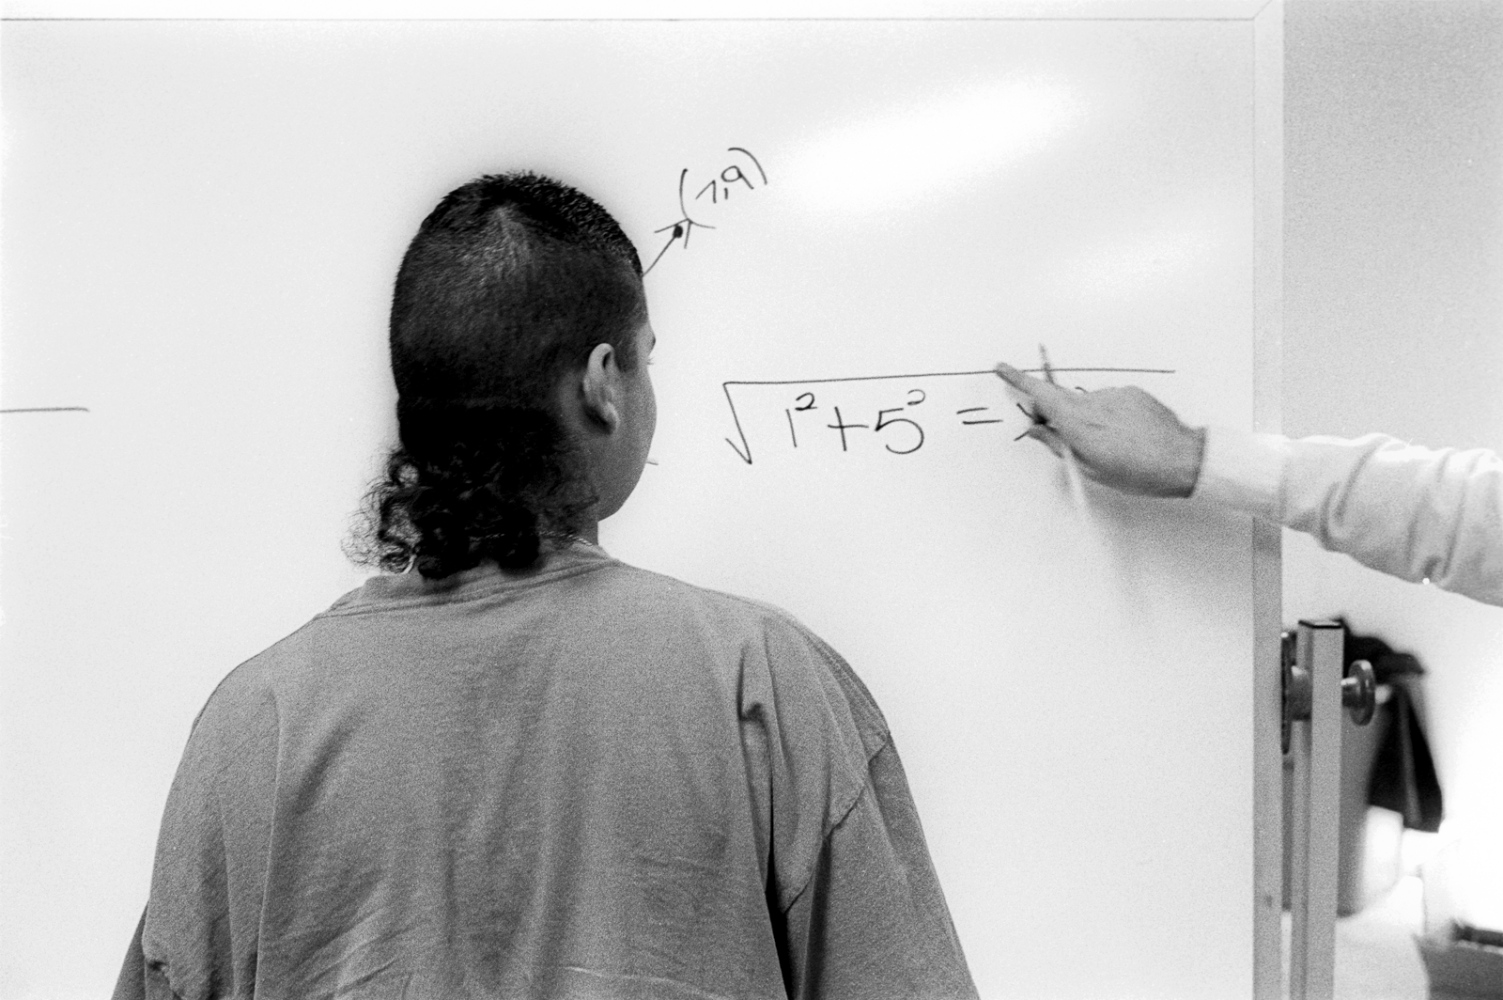 Jose learns math. Jose was later jailed for beating someone to death as part of a gang ritutual.